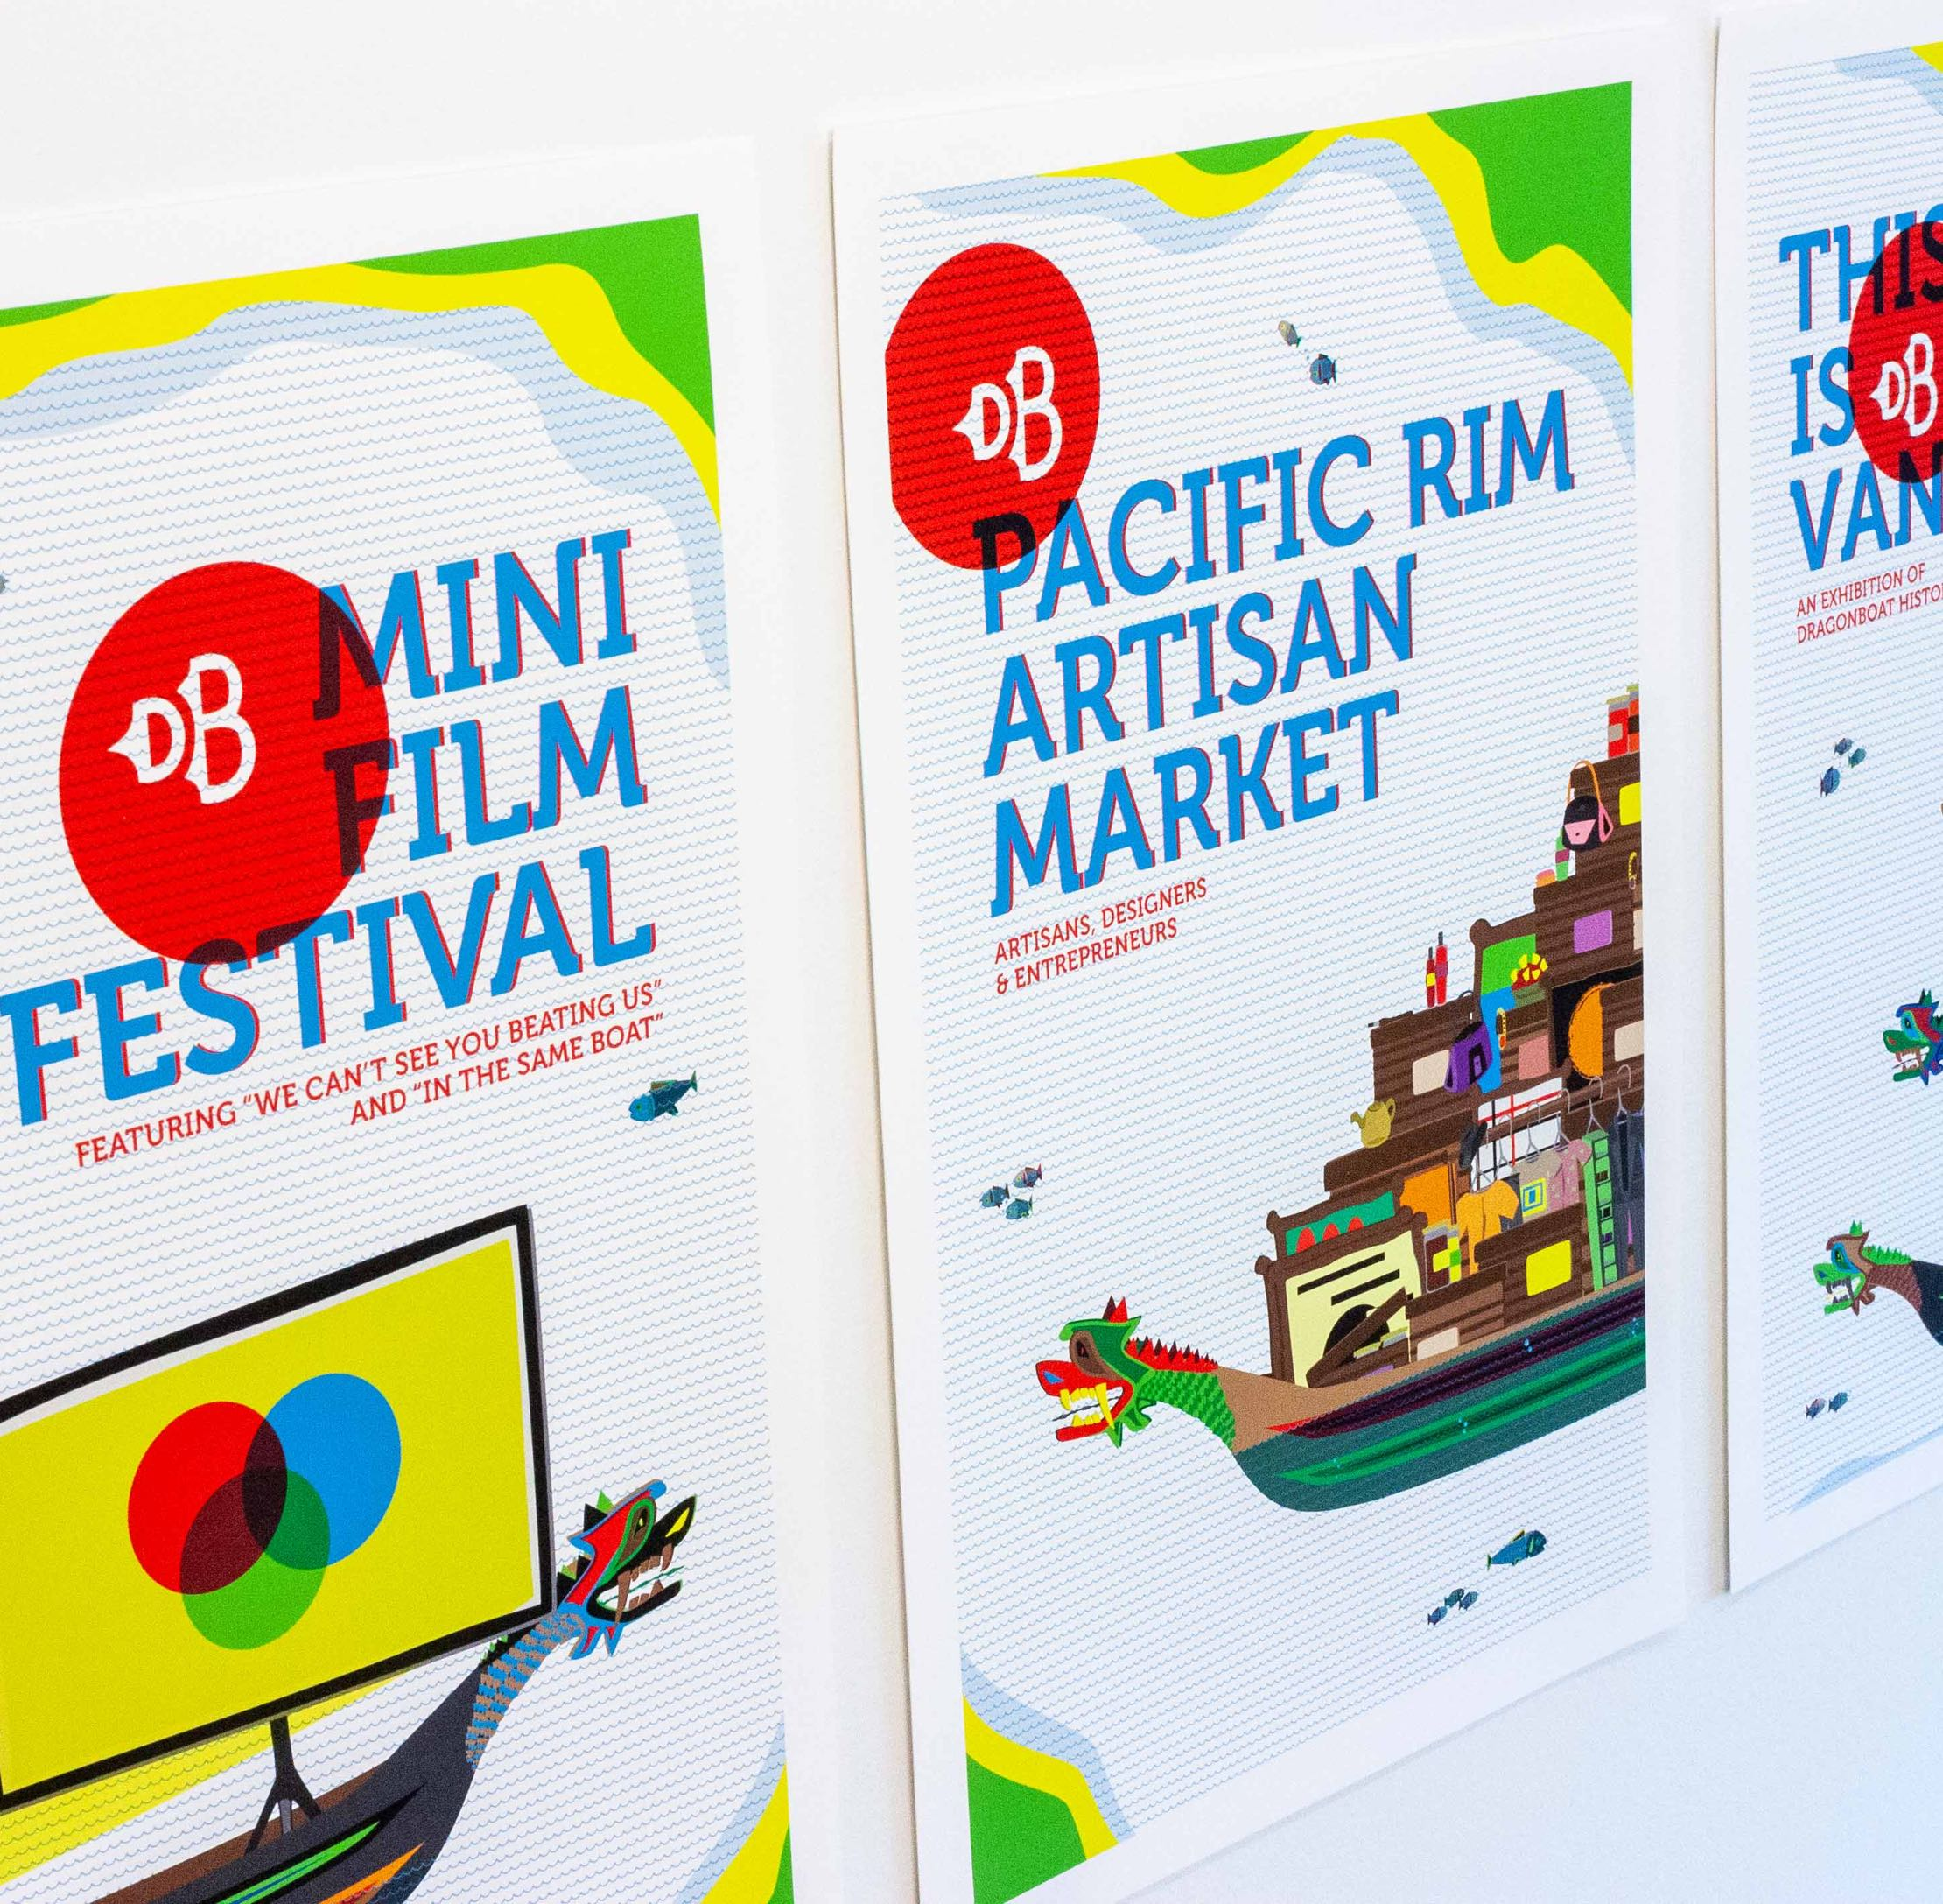 Series of Advertisement Posters for Vancouver Dragon Boat Festival featuring colorful hand drawn illustrations of the dragon boats and festival events — by Yagnyuk.